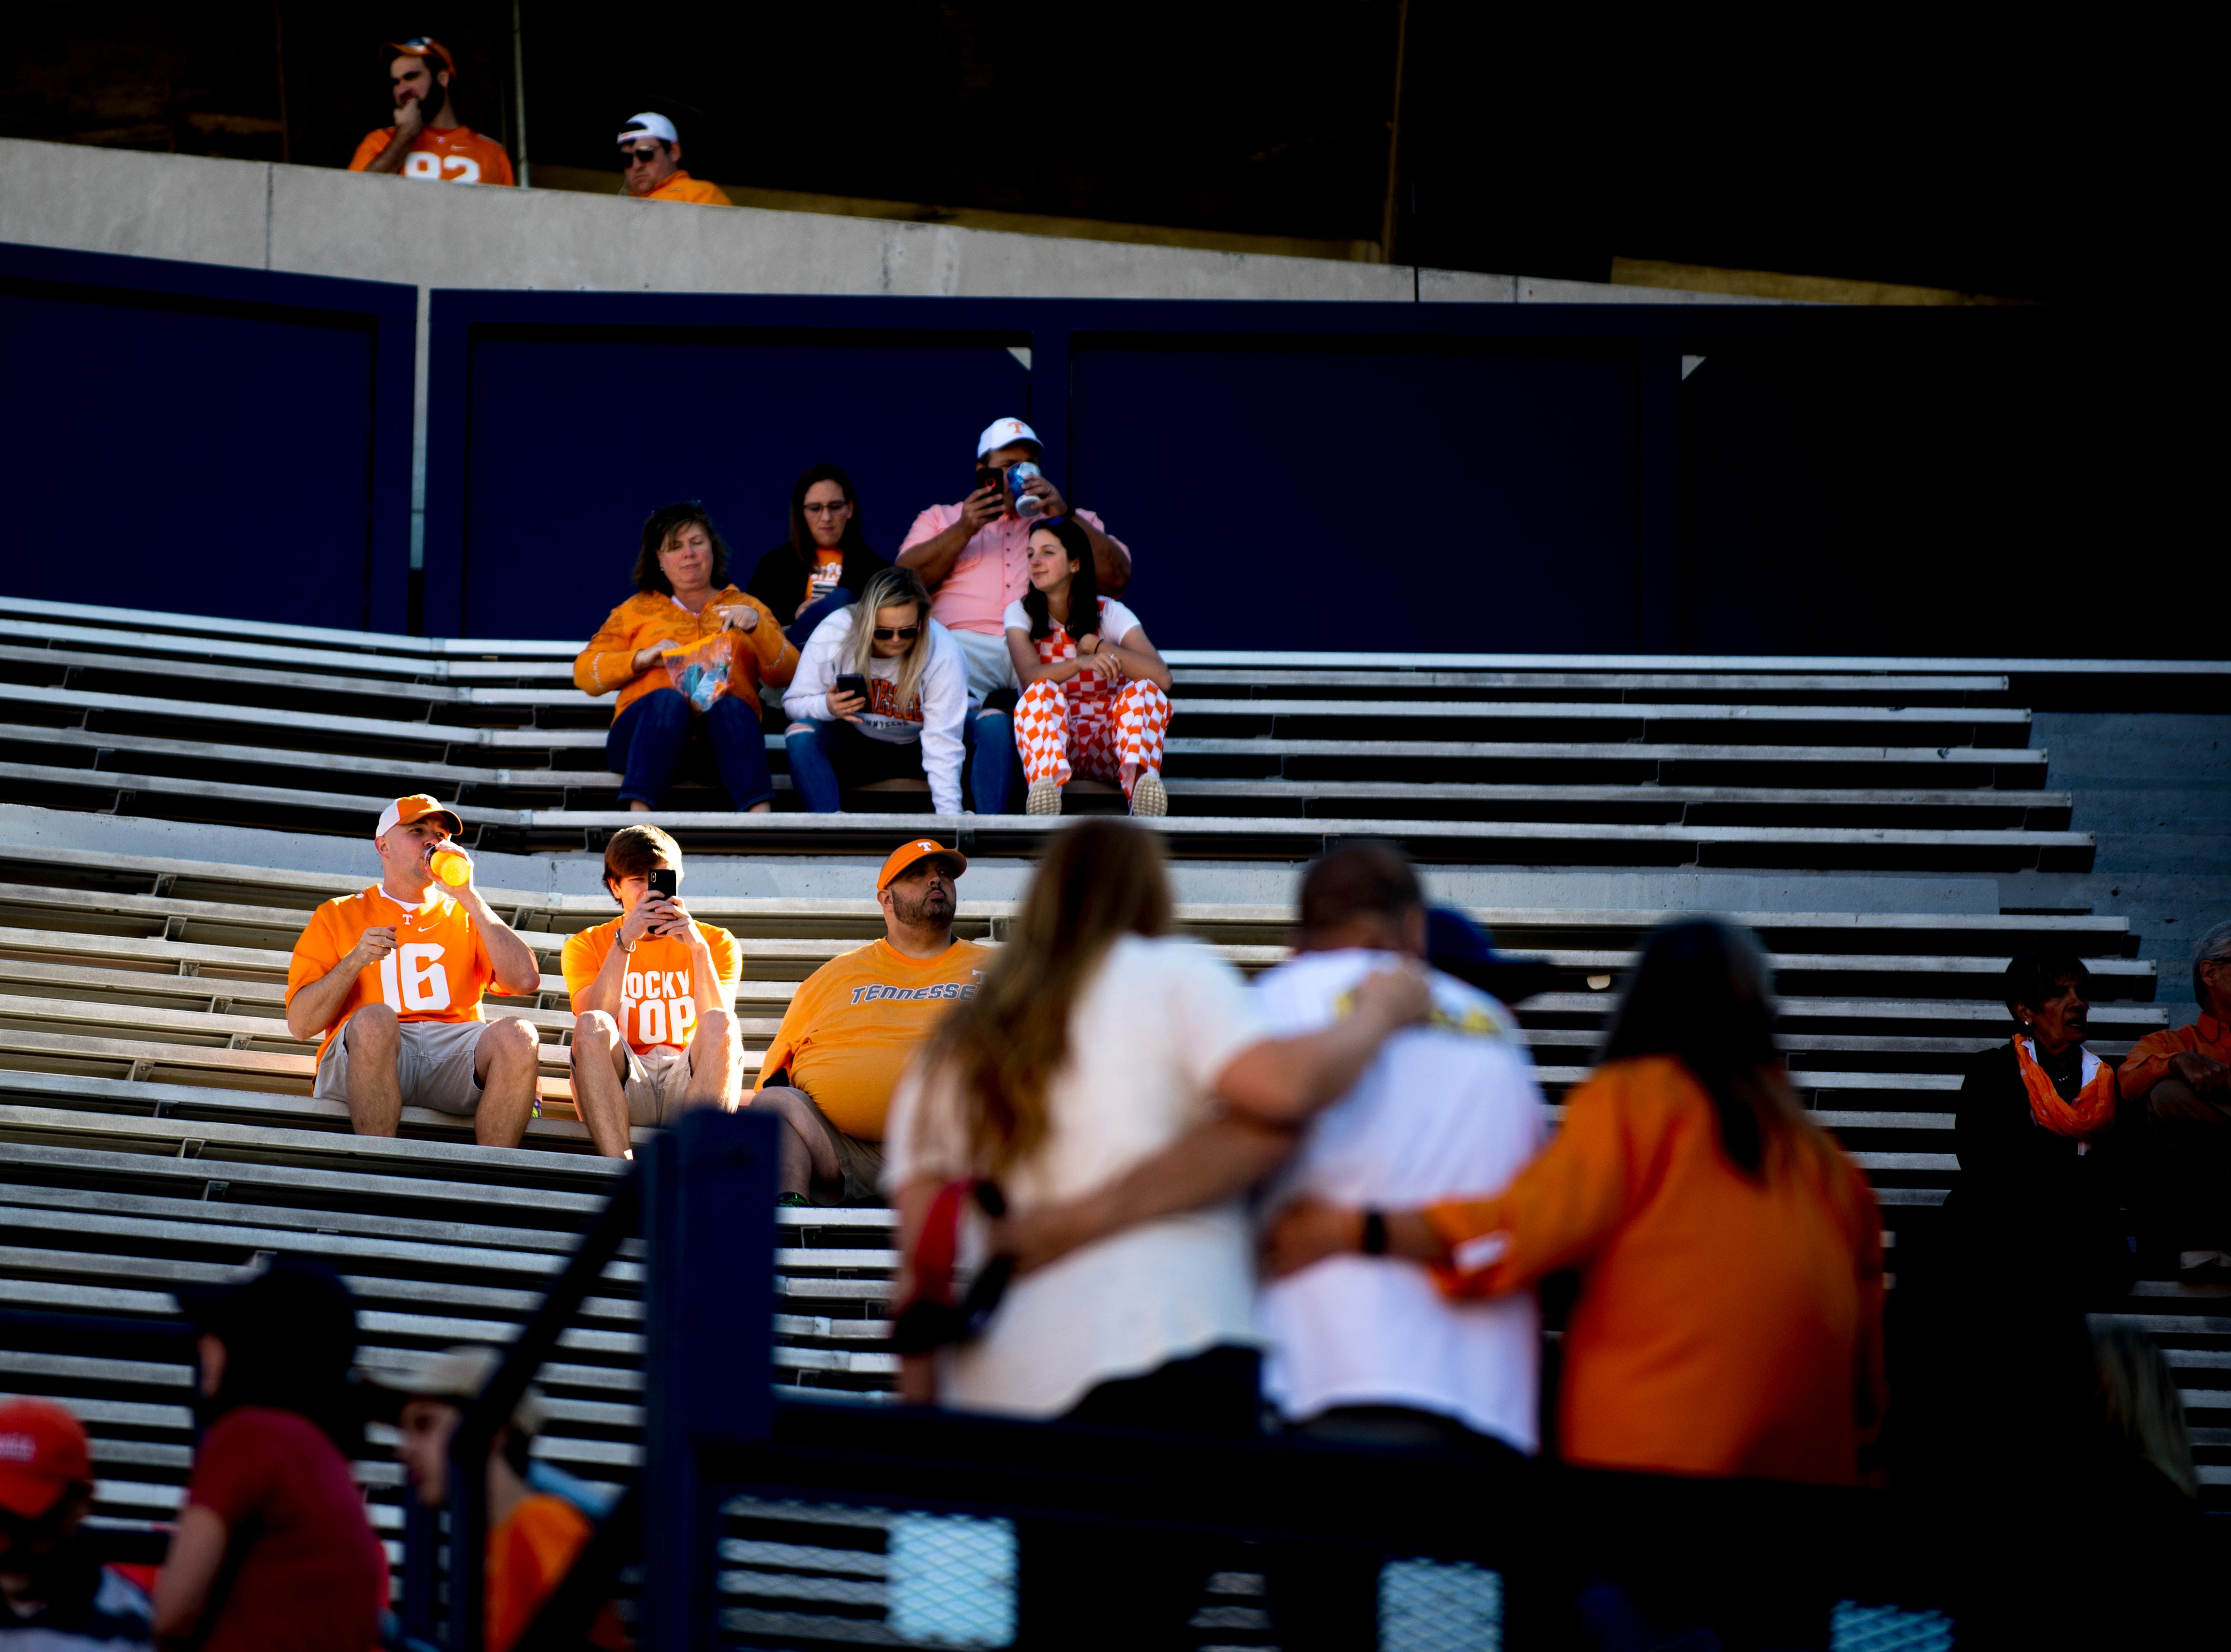 Vol fans find their seats during a game between Tennessee and Auburn at Jordan-Hare Stadium in Auburn, Alabama on Saturday, October 13, 2018.